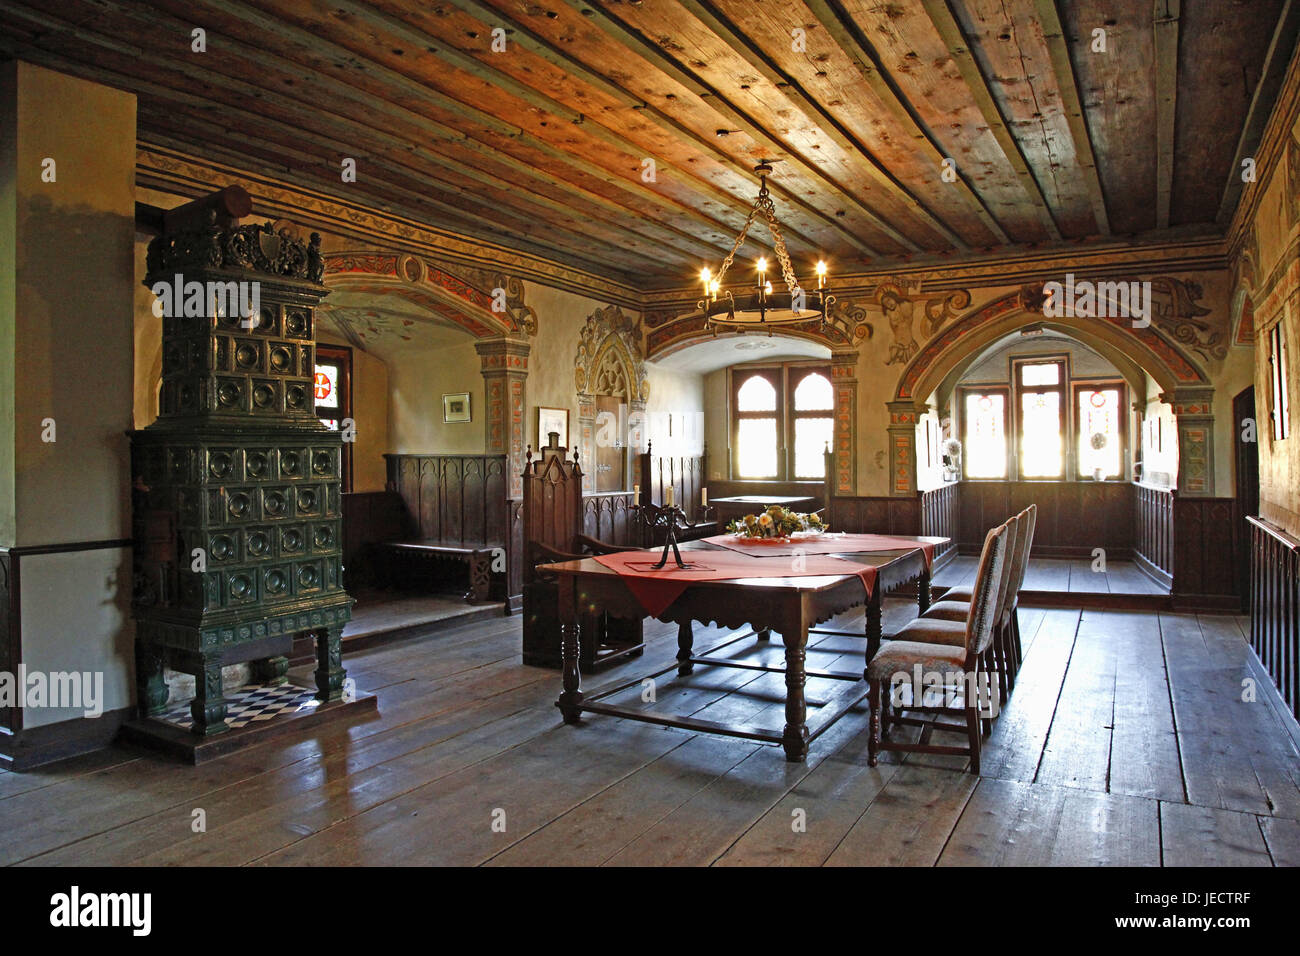 Germany, Baden-Wurttemberg, Neckar bishop's home, old castle, Trauzimmer, lock, architecture, interior view, - Stock Image